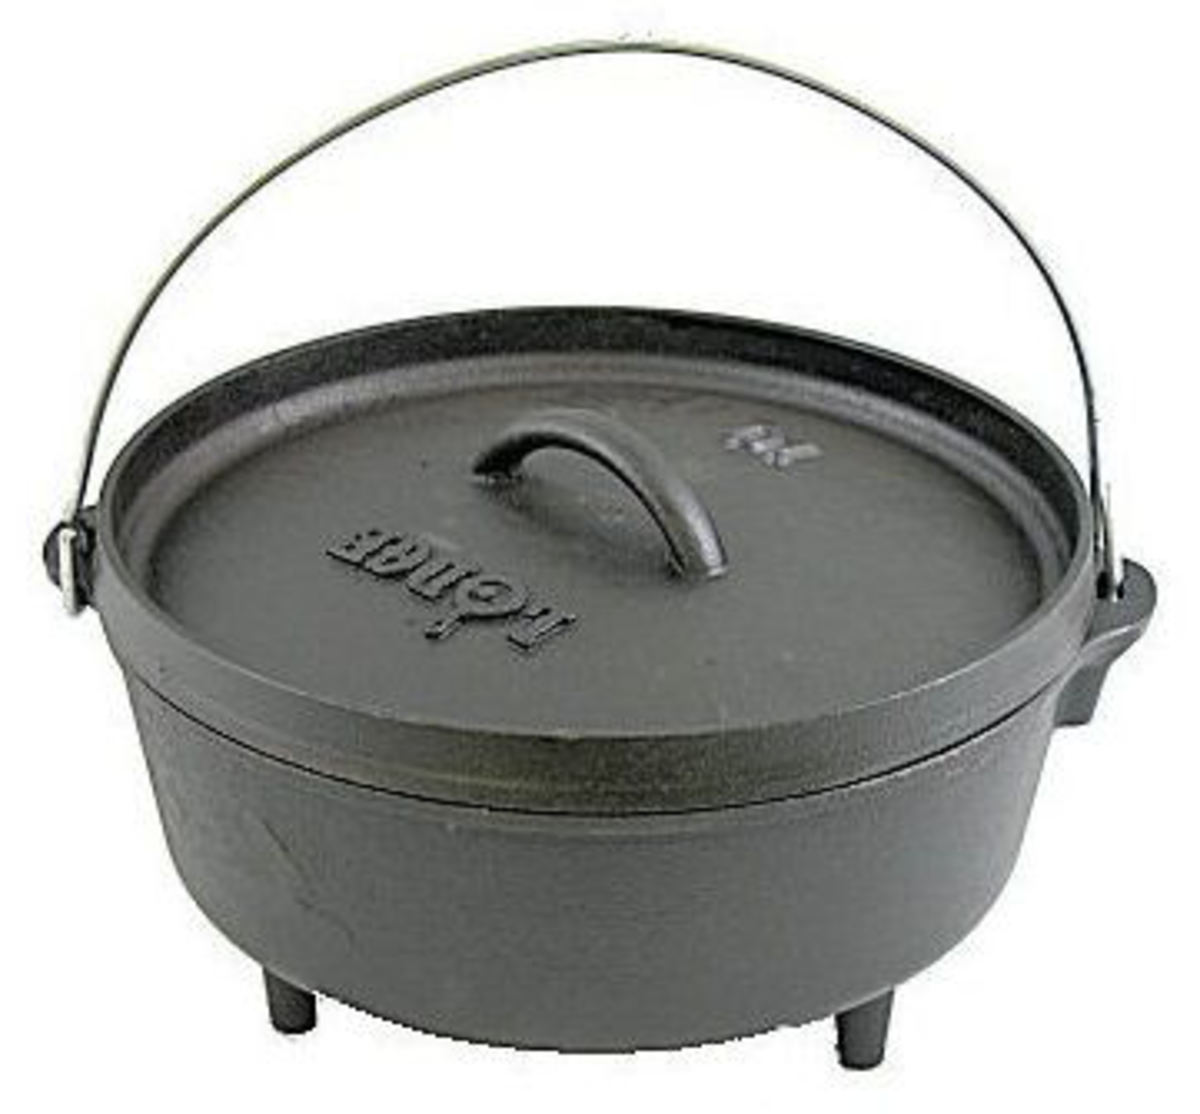 Campfire Cooking with a Dutch Oven - Cast Iron Camping Recipes